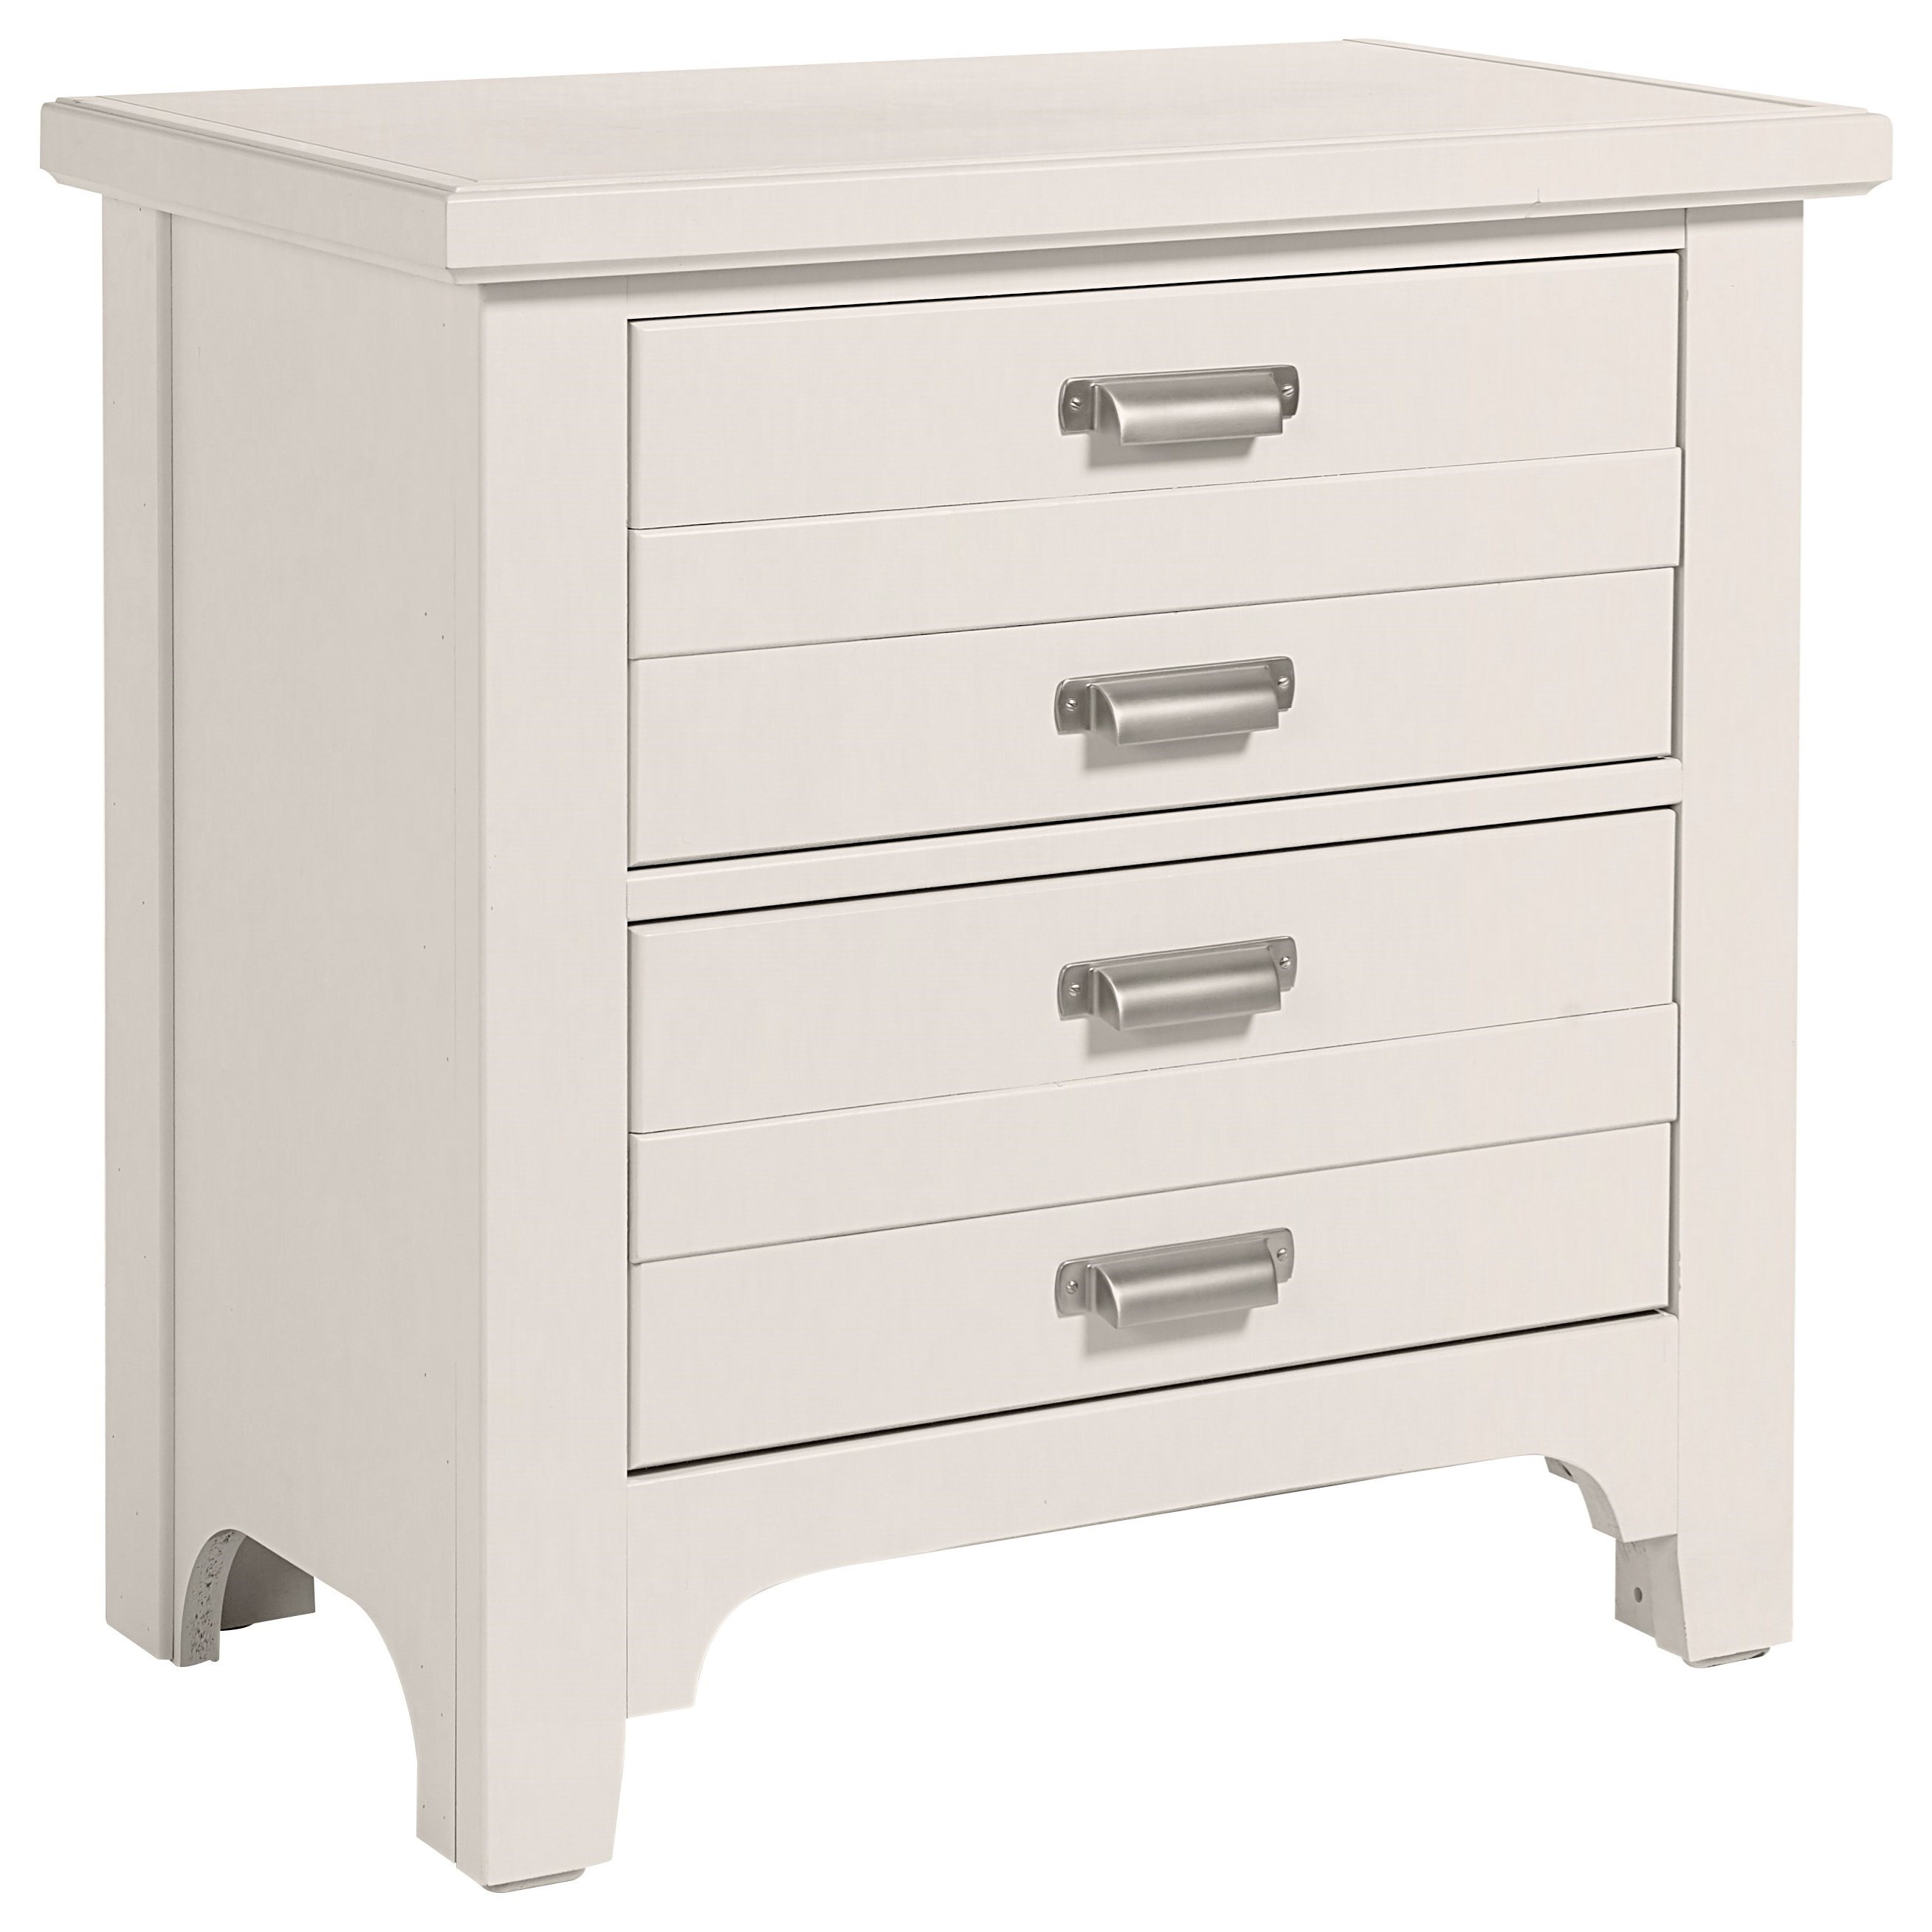 Bungalow Nightstand by Vaughan-Bassett at Crowley Furniture & Mattress